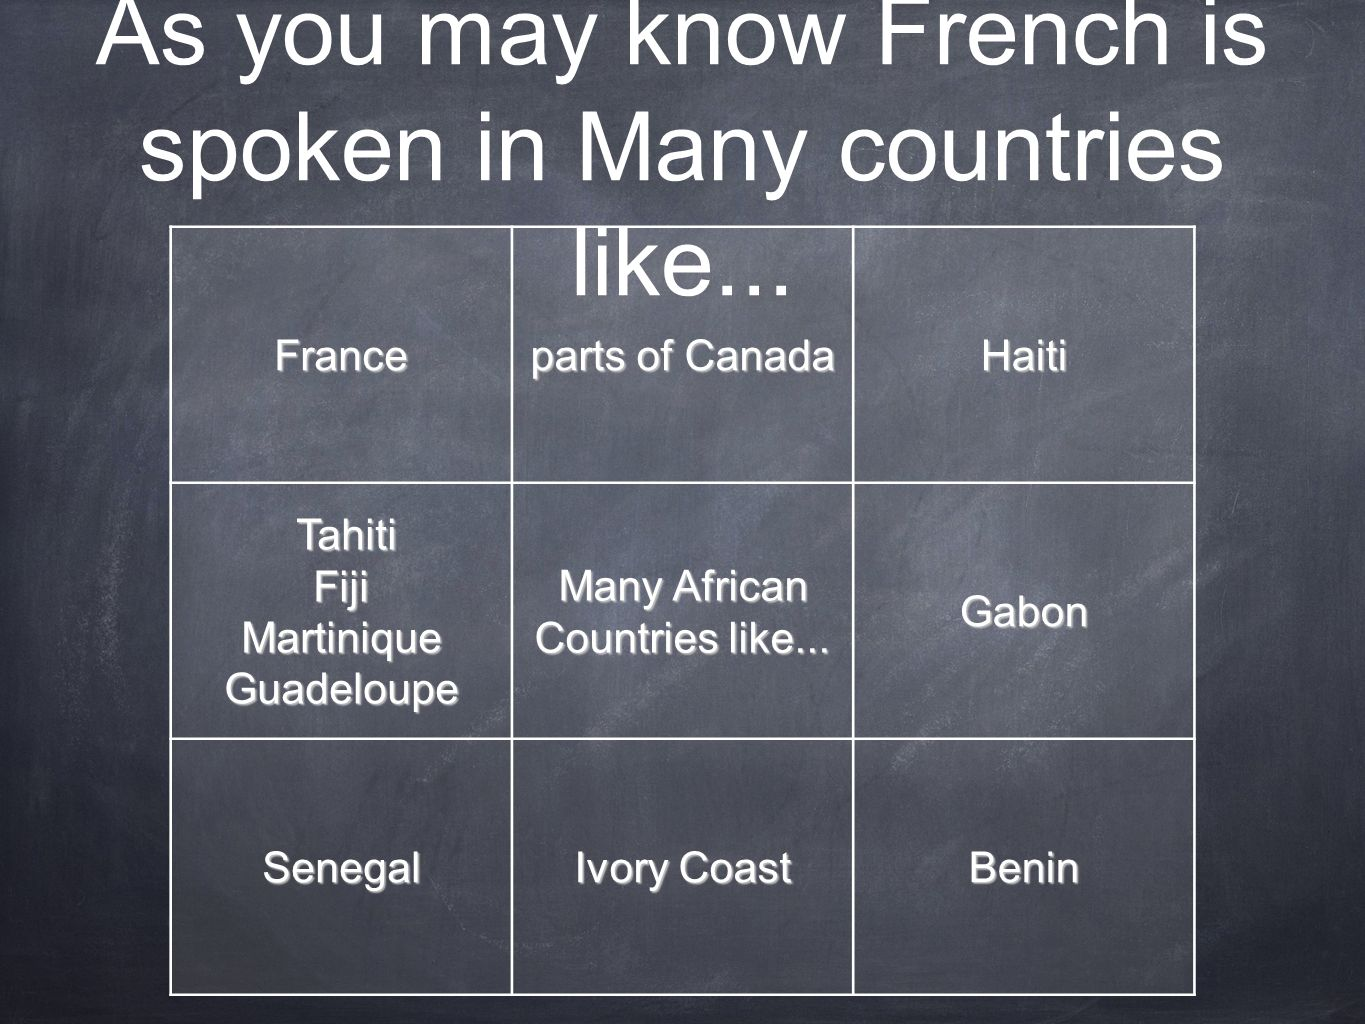 As you may know French is spoken in Many countries like... France parts of Canada Haiti Tahiti TahitiFijiMartiniqueGuadeloupe Many African Countries l